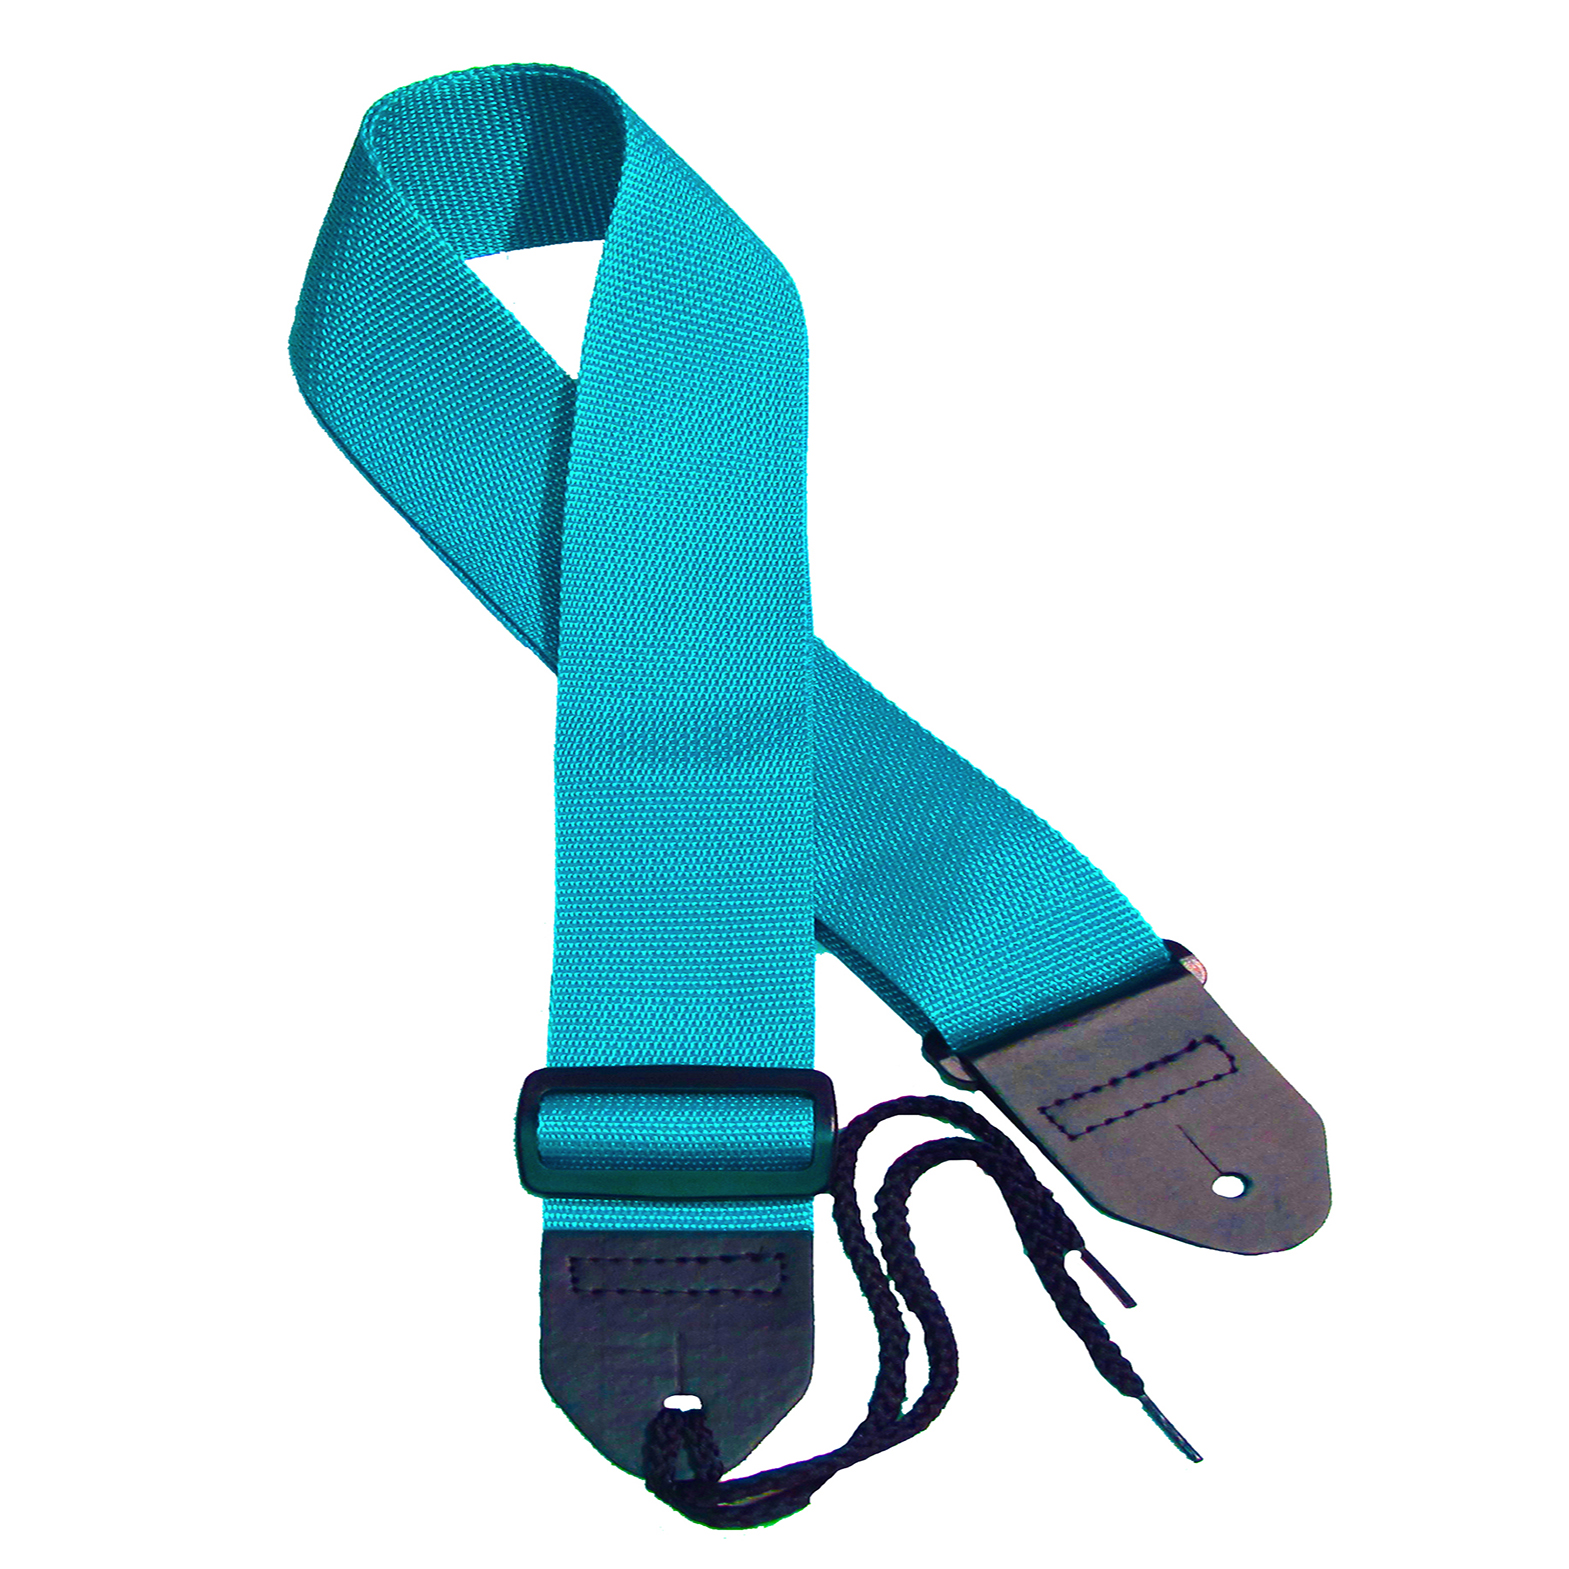 Turquoise poly guitar strap